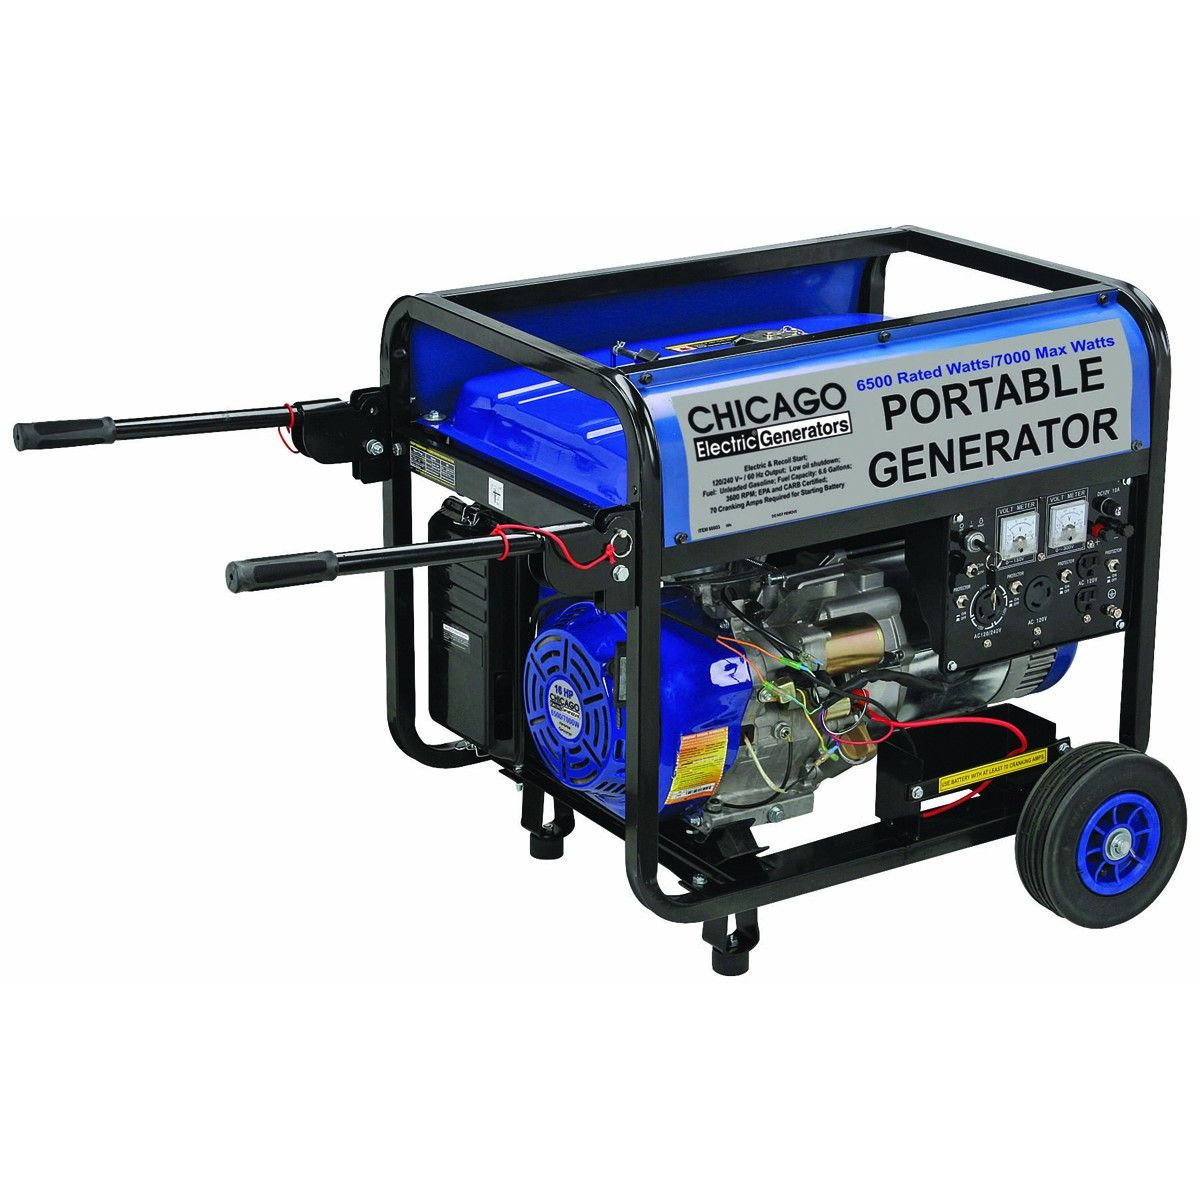 small resolution of chicago electric generators 66603 16 hp 6500 rated watts 7000 max watts portable generator carb